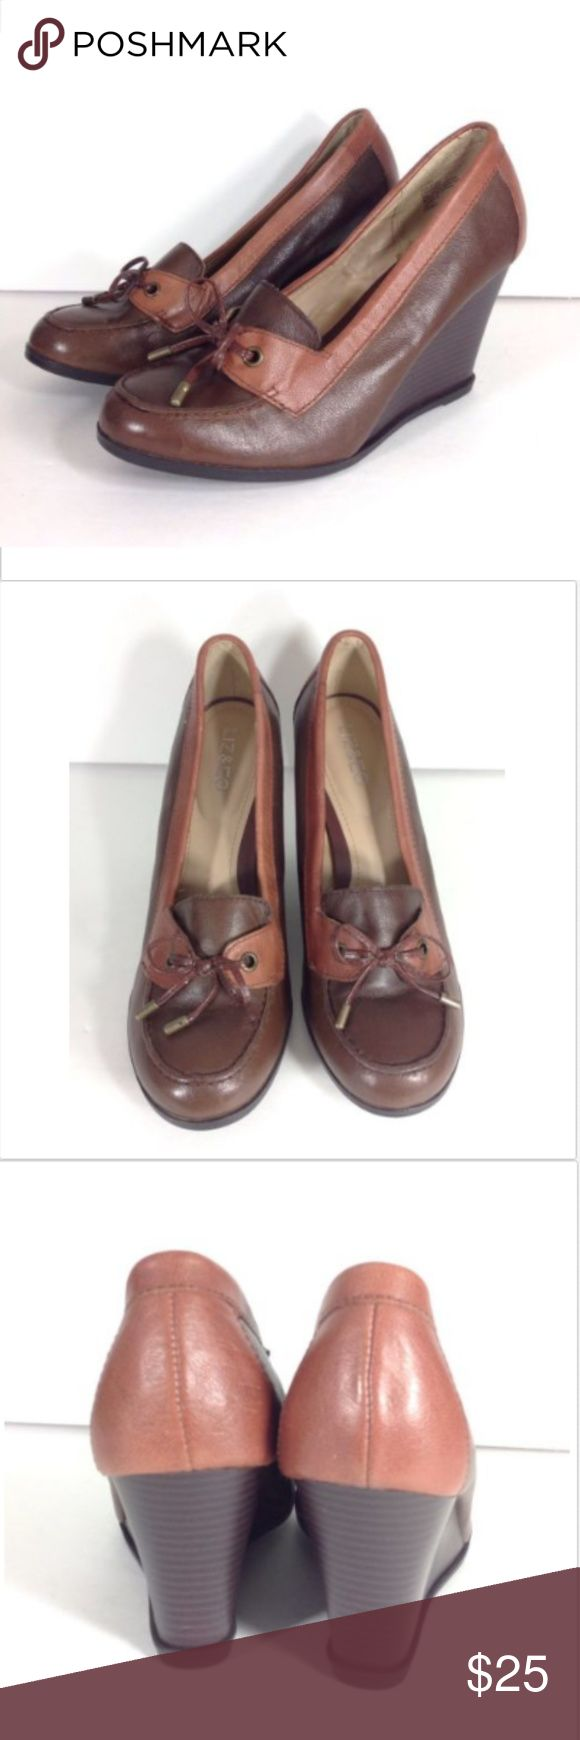 Liz & Co Color Block Wedge Loafers LIZ & CO Women's Size 10 Medium Brown Loafer Wedges Leather Upper Round Toe Bow Trim Liz and Co Shoes Wedges